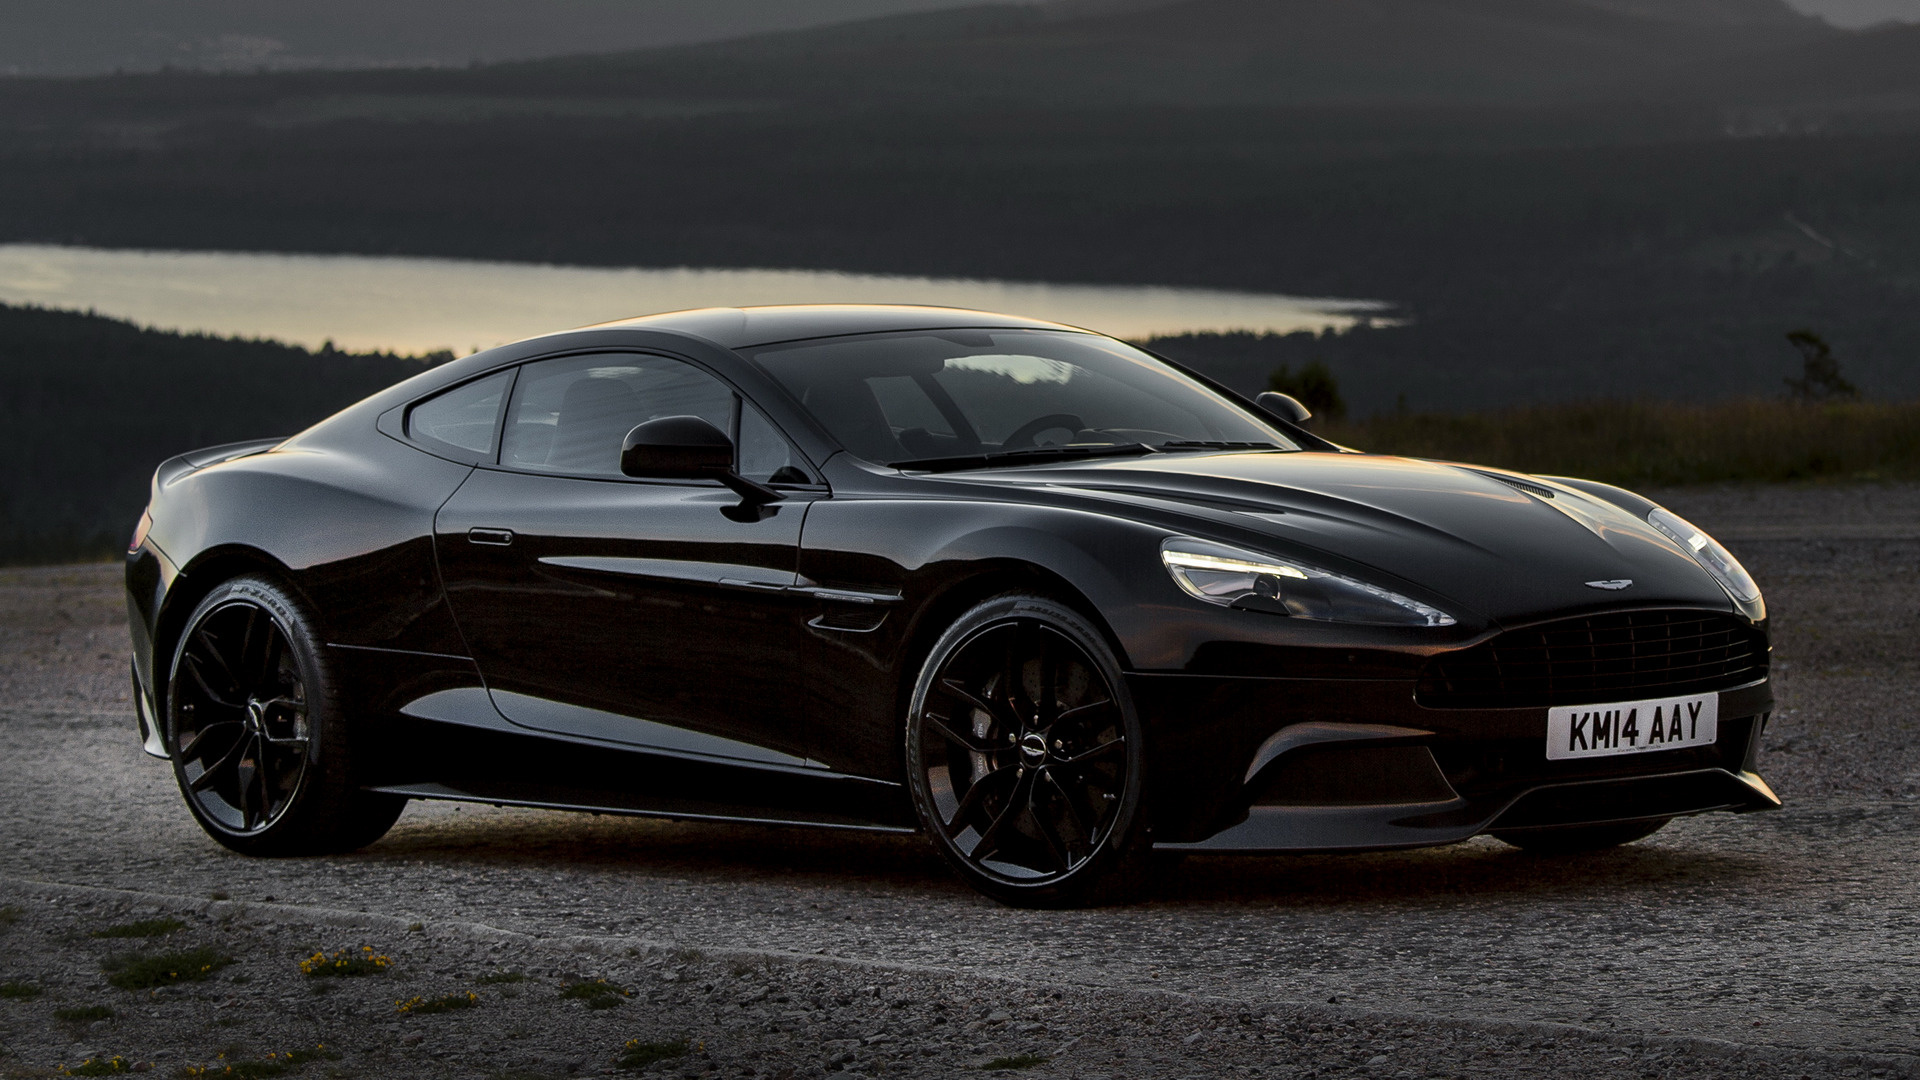 2014 Aston Martin Vanquish Carbon Black   Wallpapers and HD Images 1920x1080